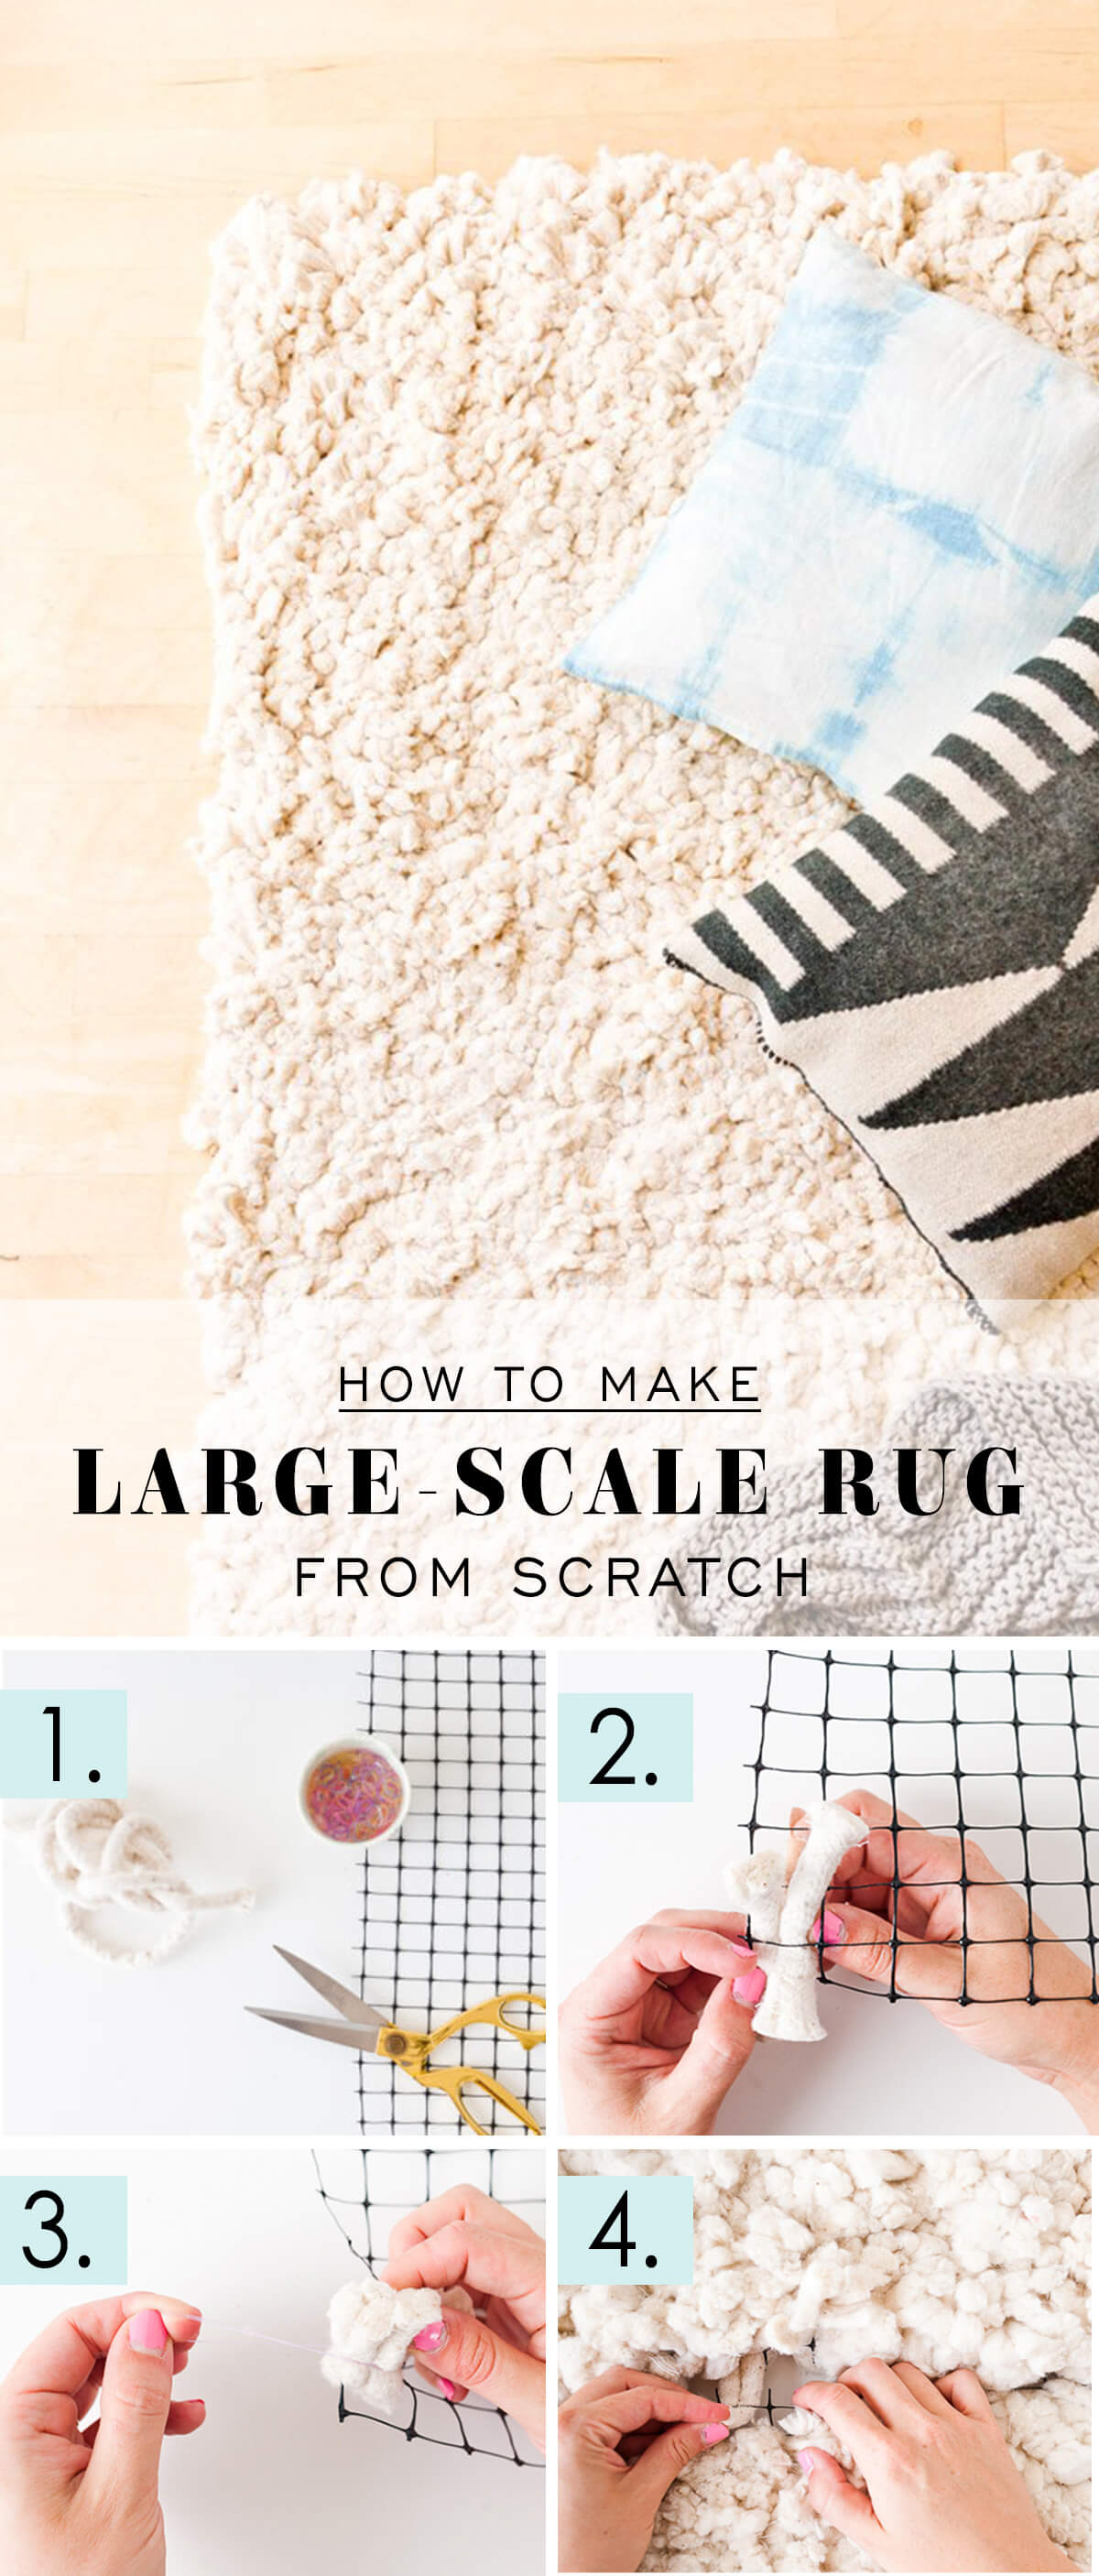 Make Your Own Room-Size Rug